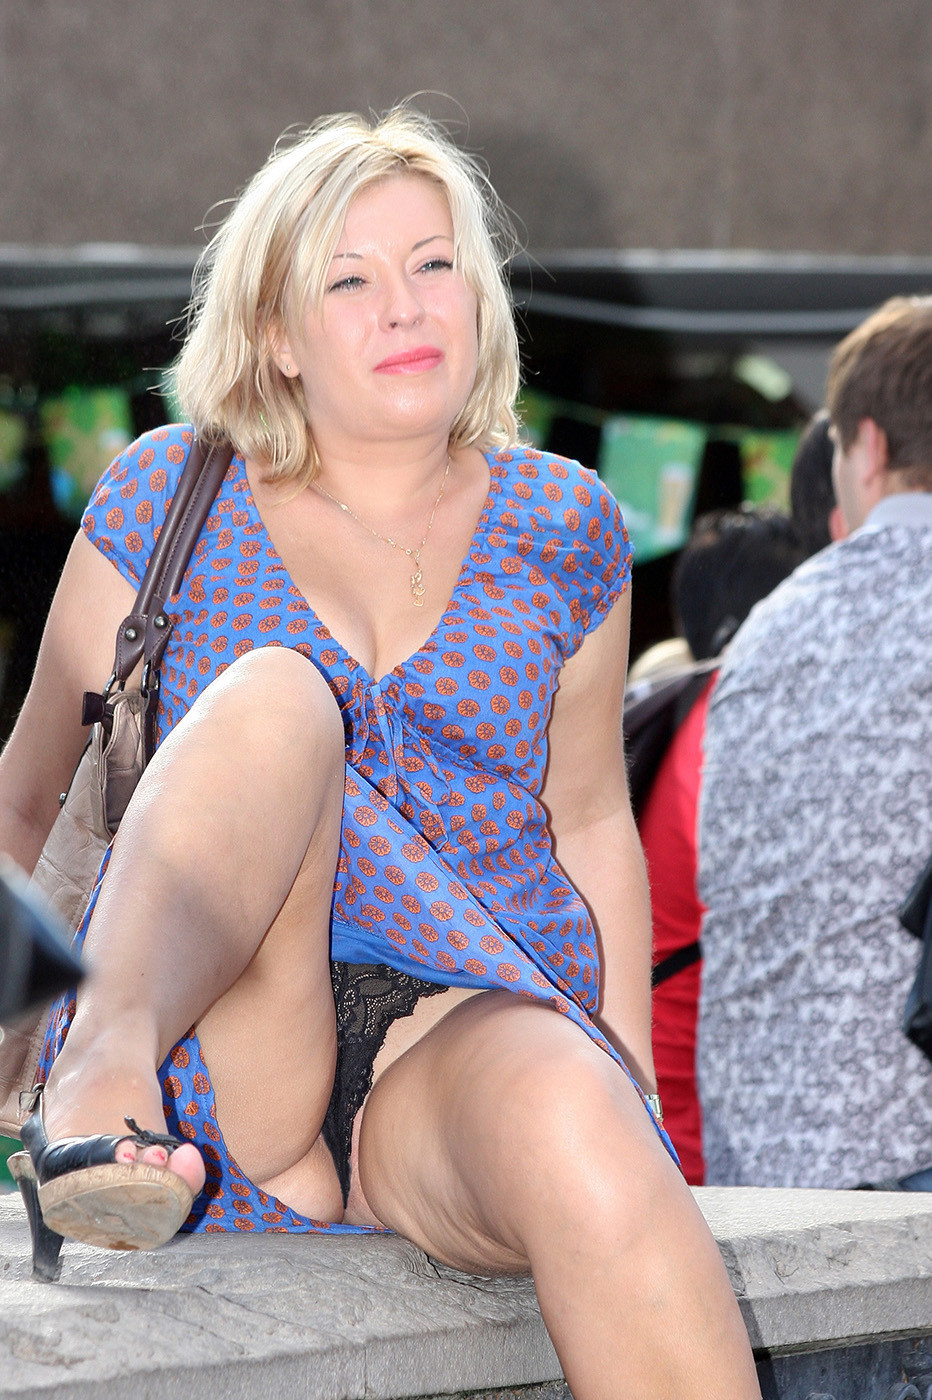 Upskirt Spy Pussy Oops On Street Nude Girls Pictures